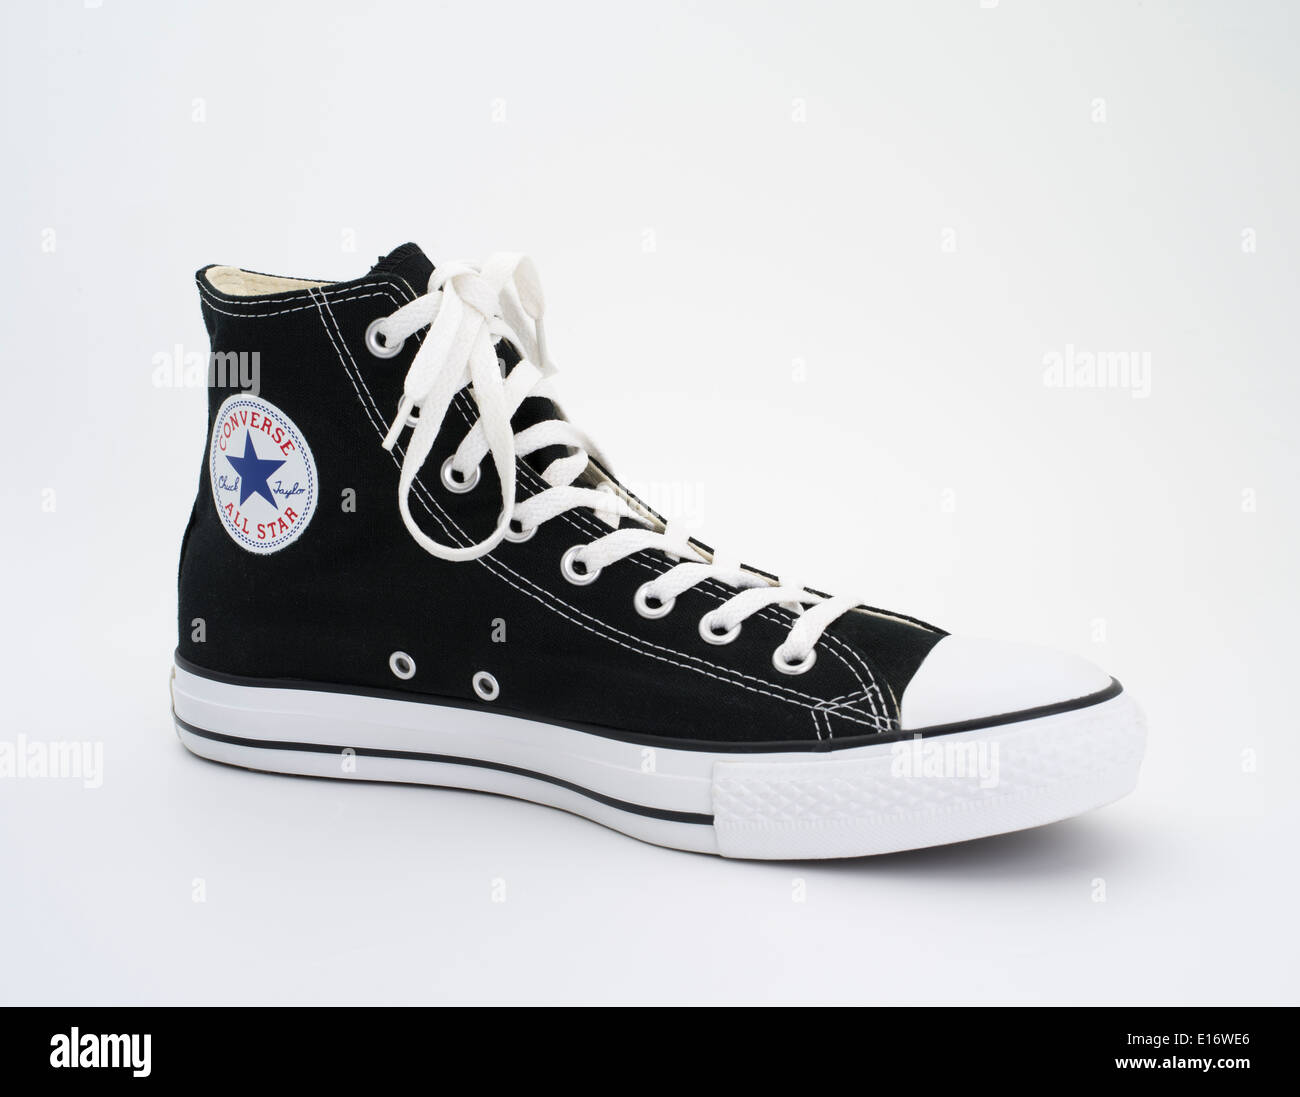 converse all star black and white chuck taylor chuck